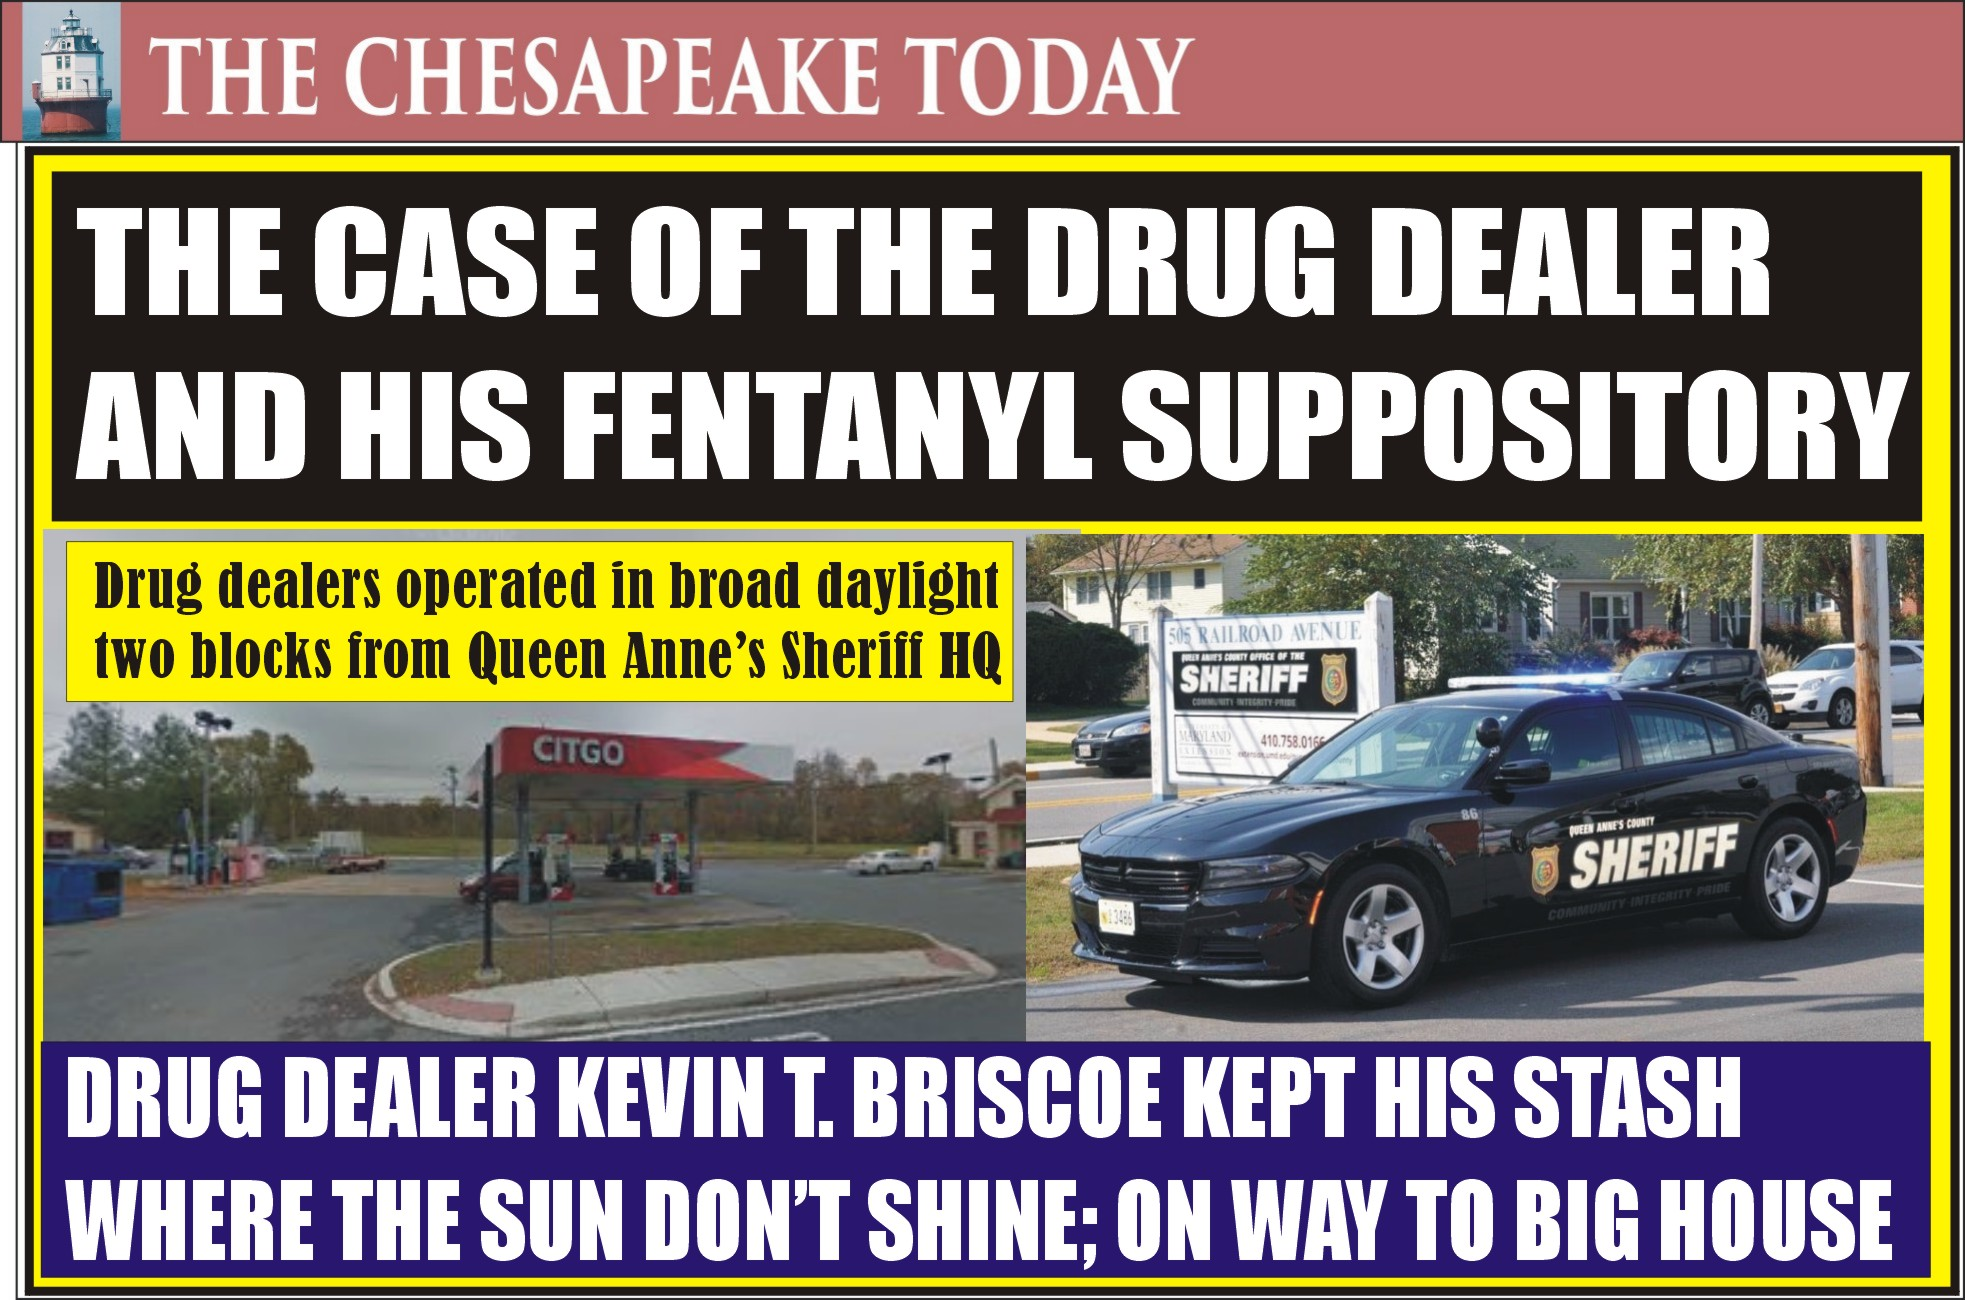 HEROIN HIGHWAY TO HELL: Drug dealer Kevin Briscoe kept his business inventory stuck where the sun doesn't shine; now he is off to the big house